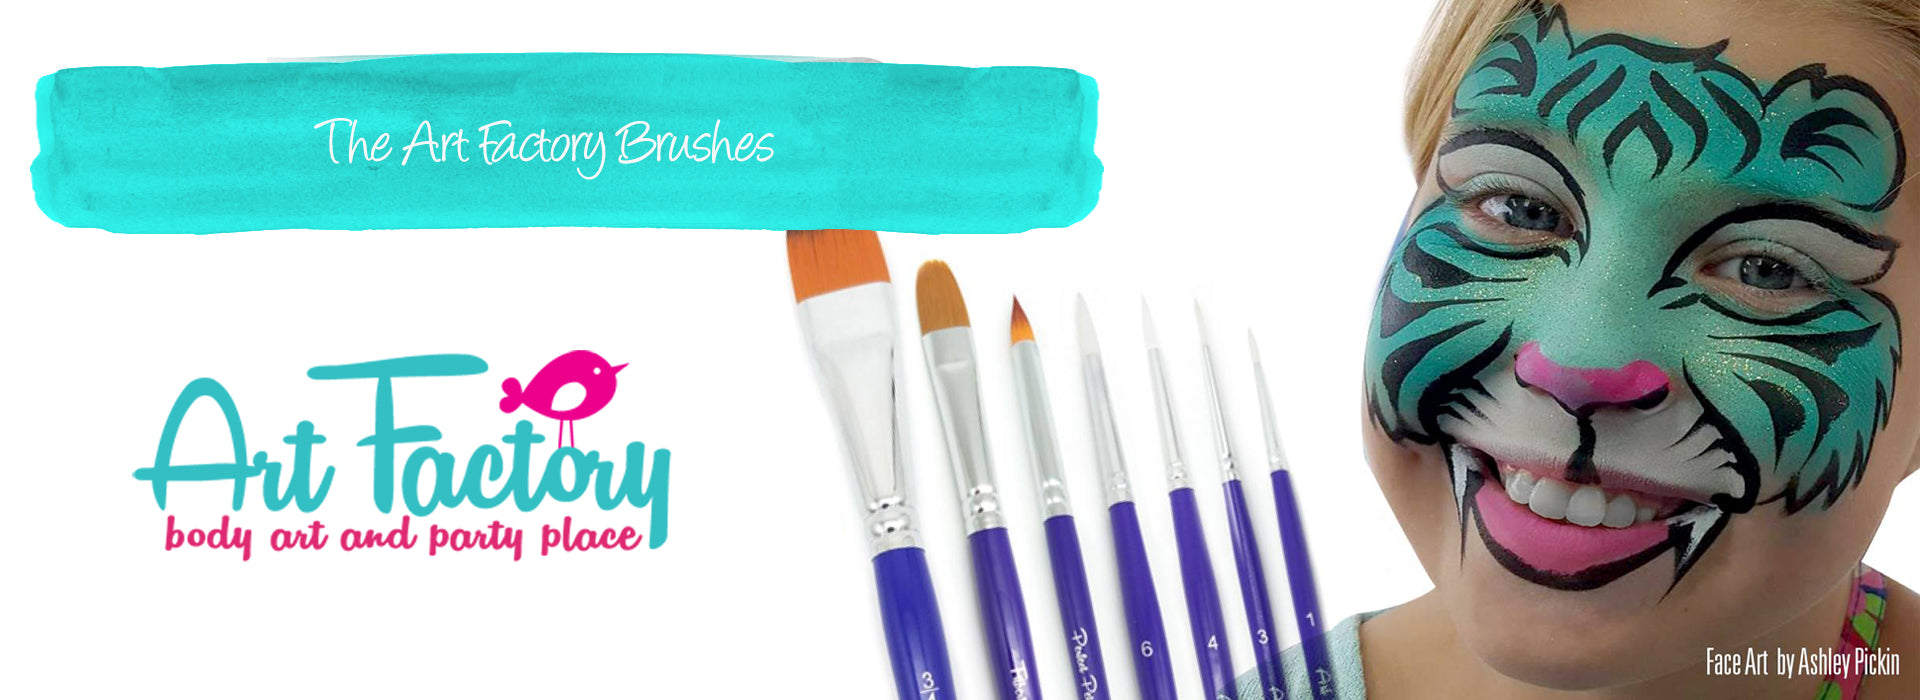 The Art Factory Brushes